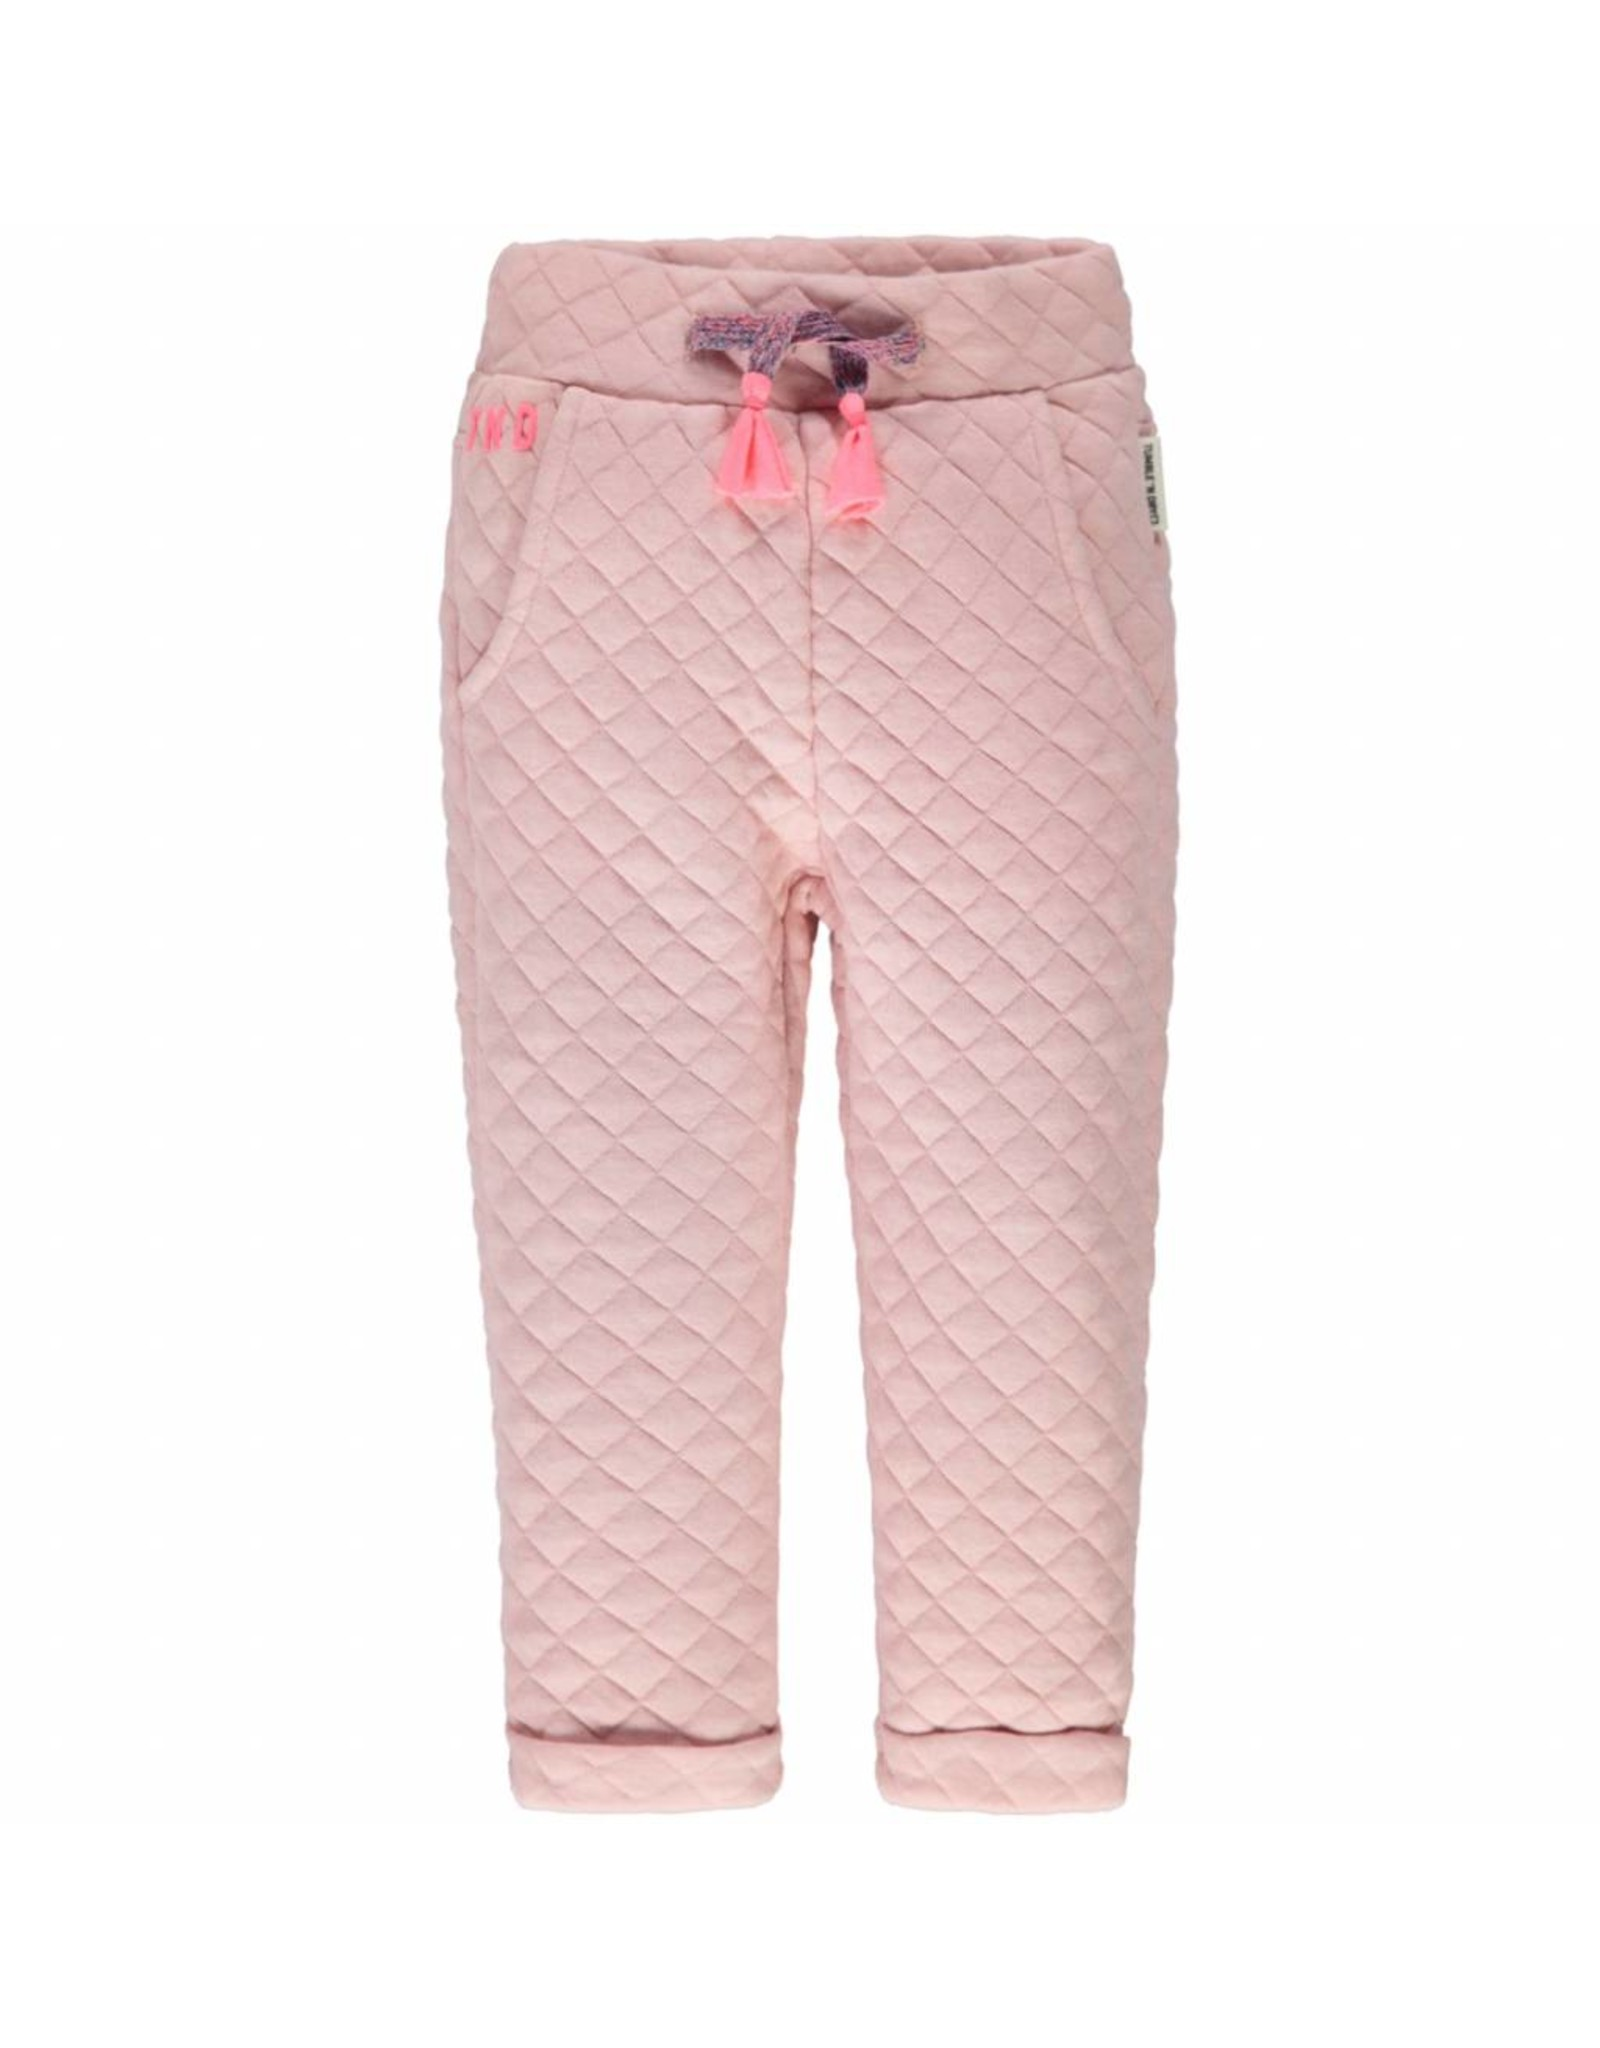 TUMBLE 'N DRY Tumble 'N Dry Girls Lo - Talie silver pink